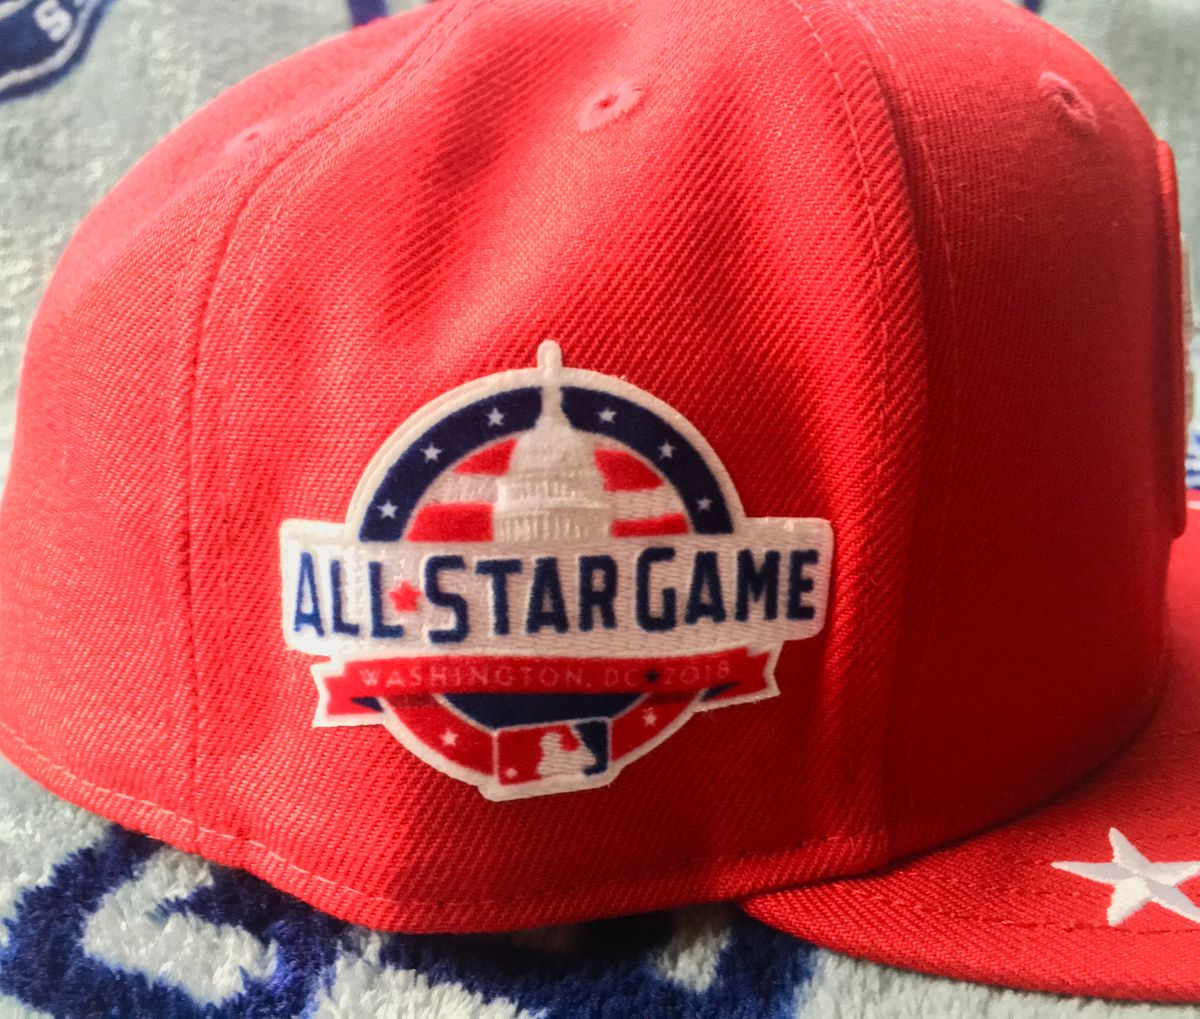 new product f7af1 a2bad TFHS Closer Look  2018 All Star Game Caps - Gaslamp Ball